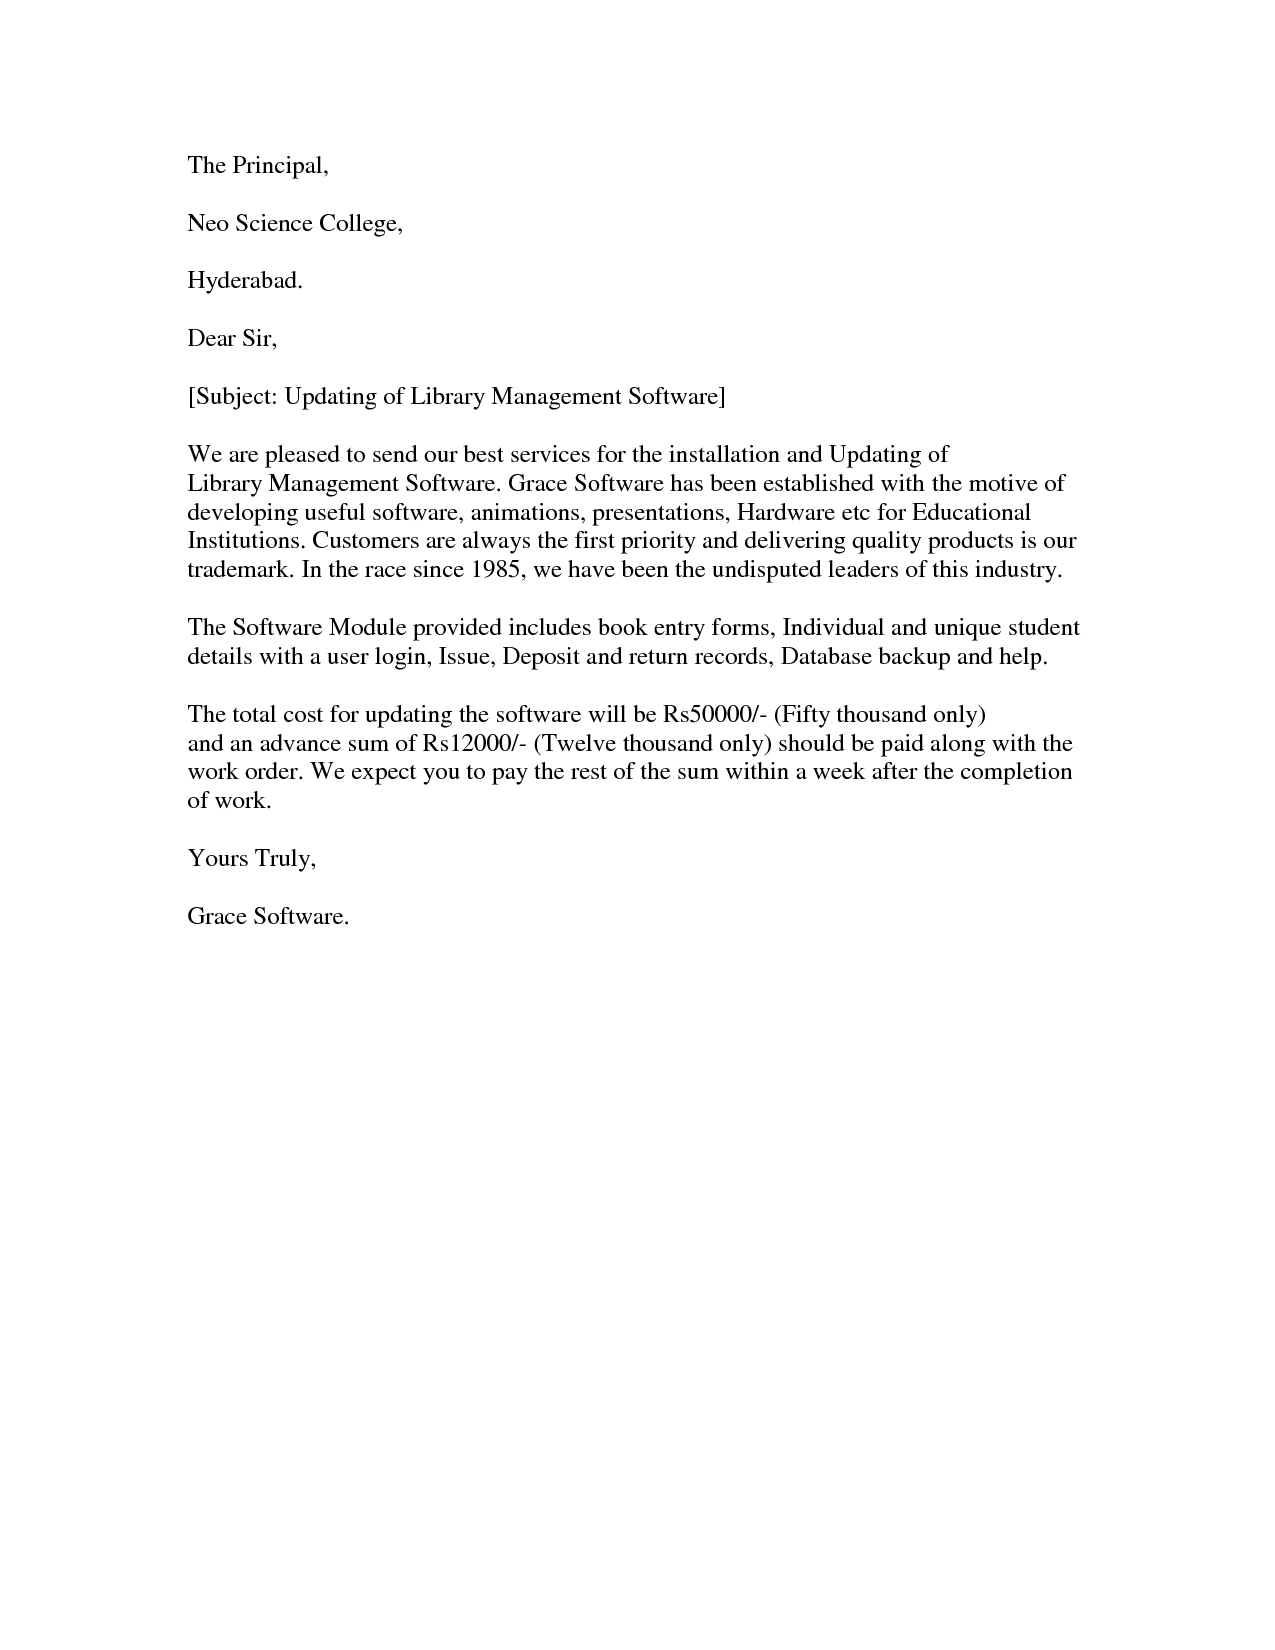 Proposal Letter To a Principal - Sample proposal letter to a